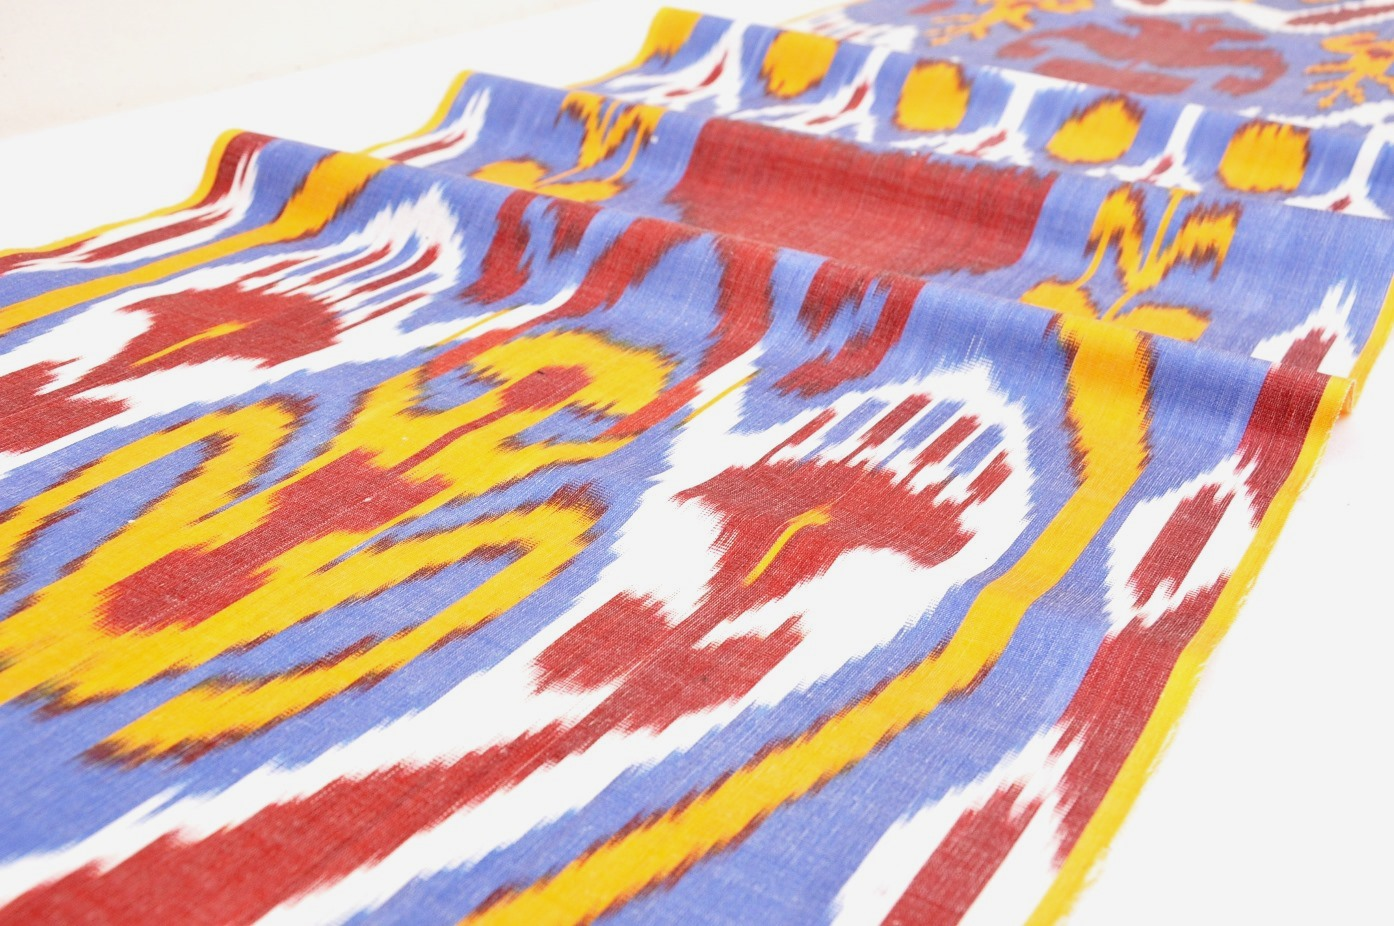 Quot Embroidered Design Quot Silk Ikat Fabric Alesouk Grand